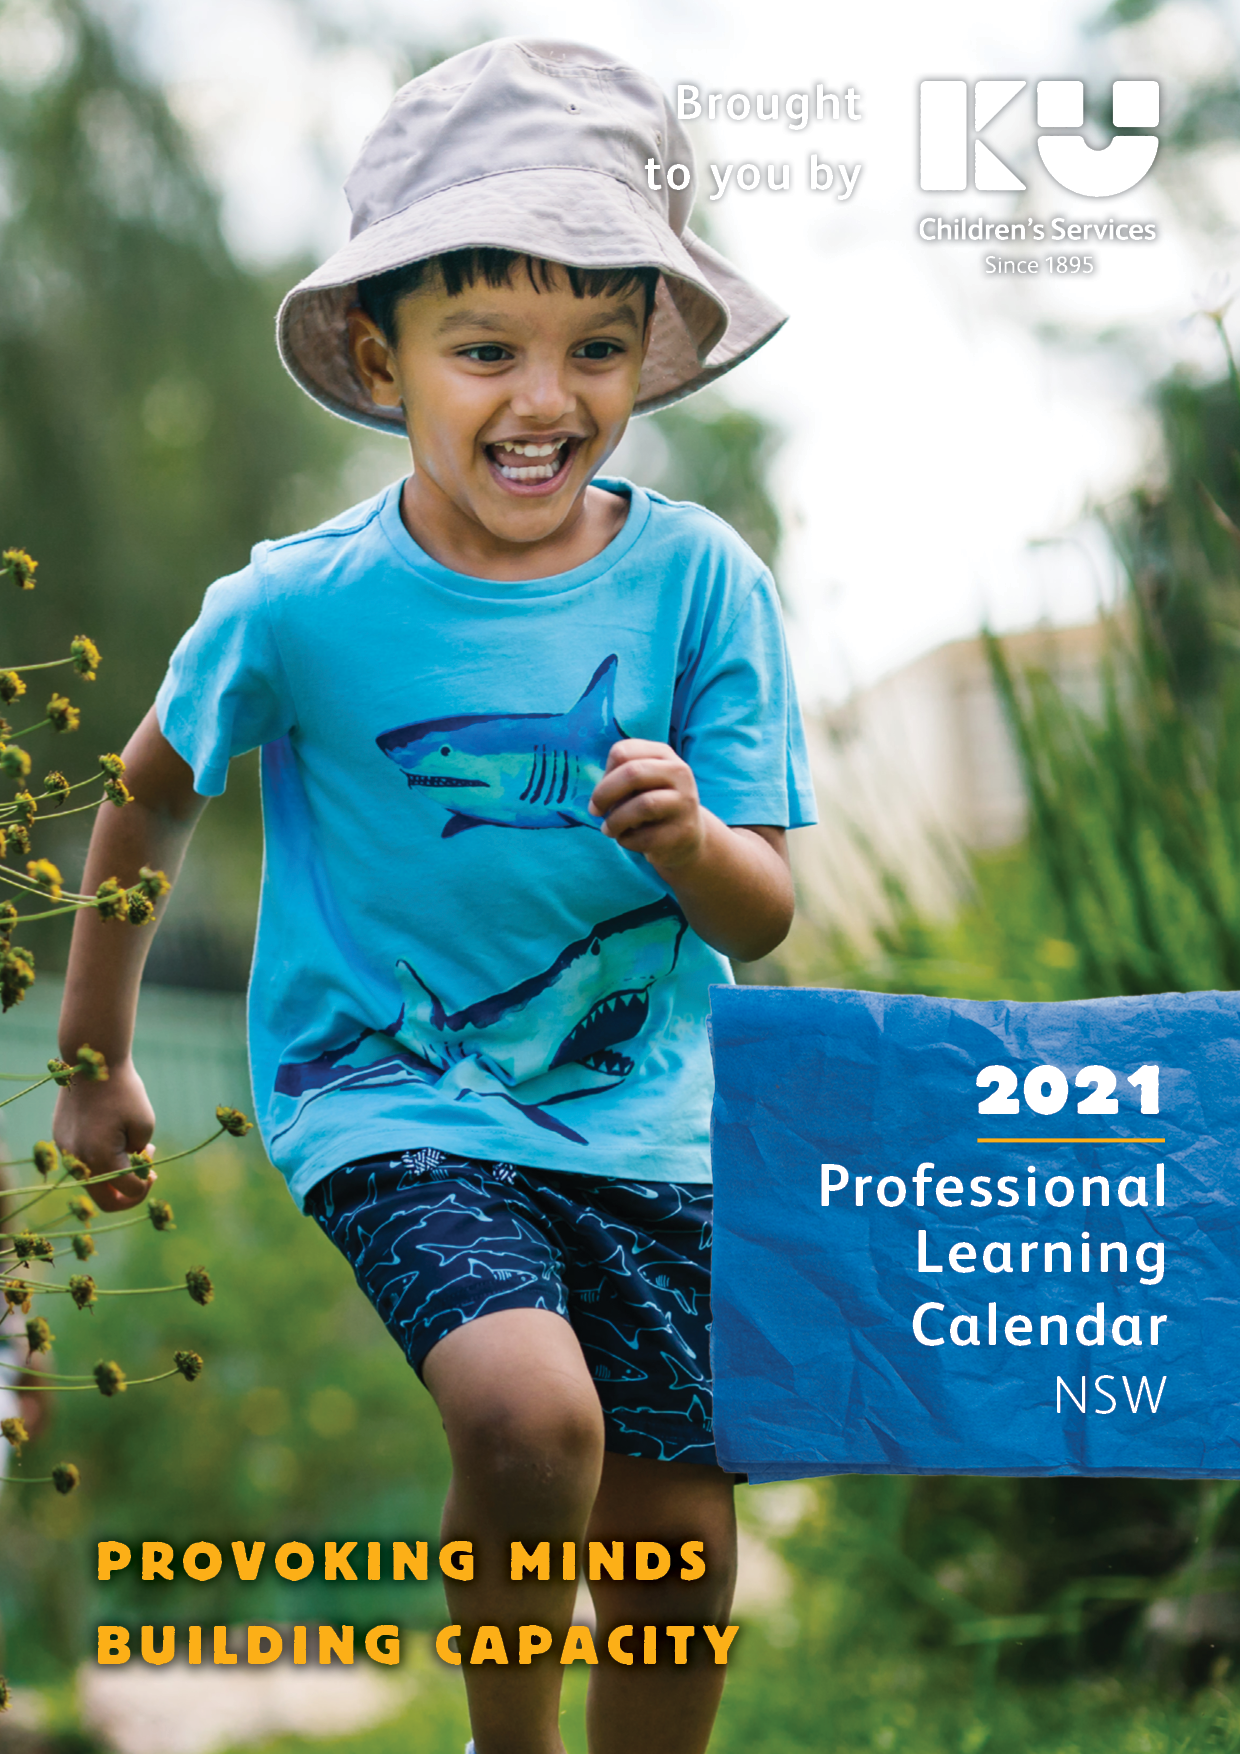 KU-Professional-Learning-Calendar-NSW-2021-Cover.png#asset:29357